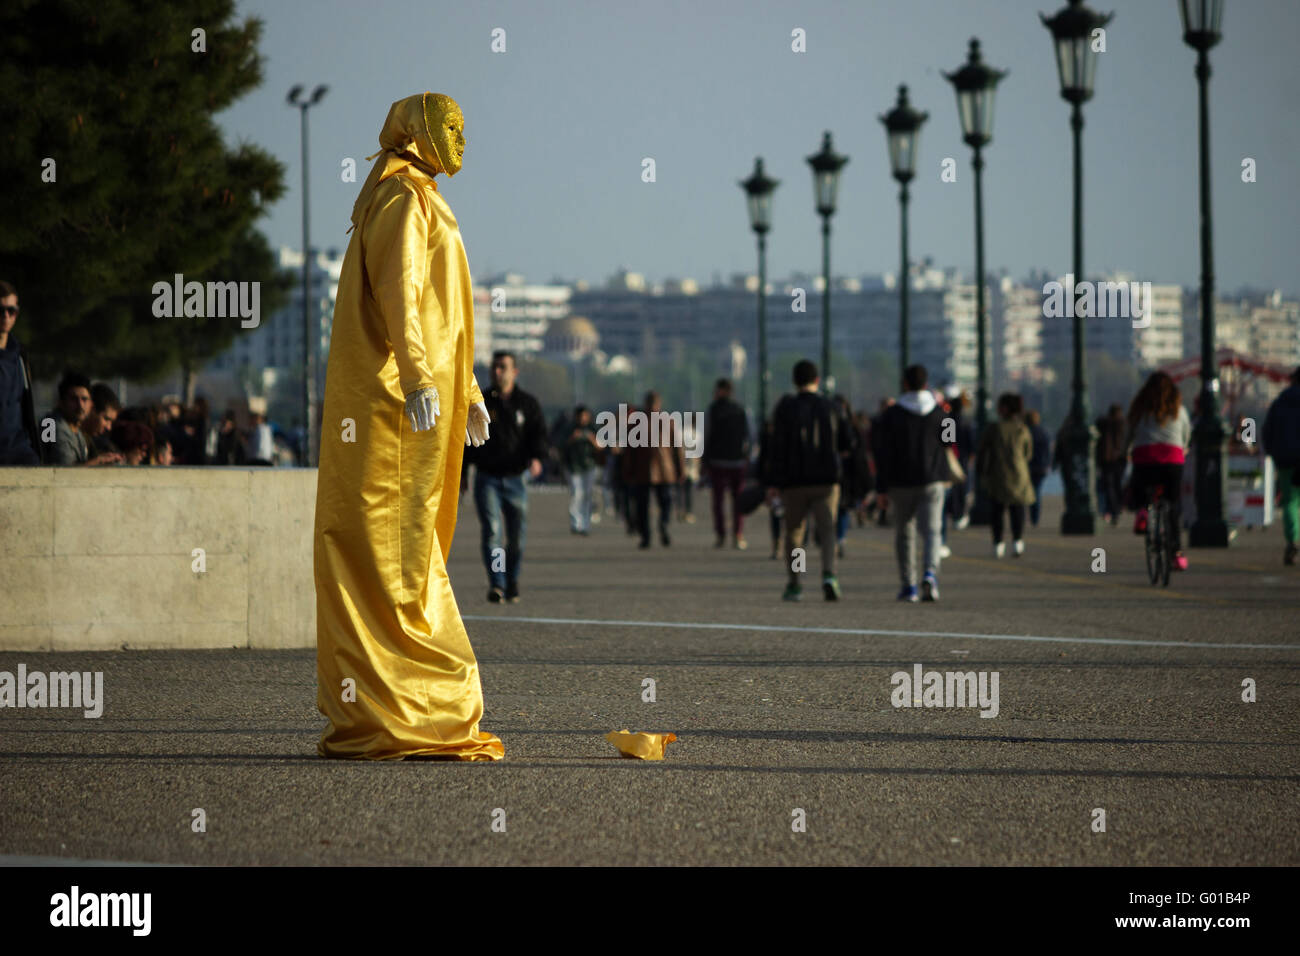 A street busker mime artist wearing a gold reflective sequin dress working for gratuities on Salonika's New - Stock Image